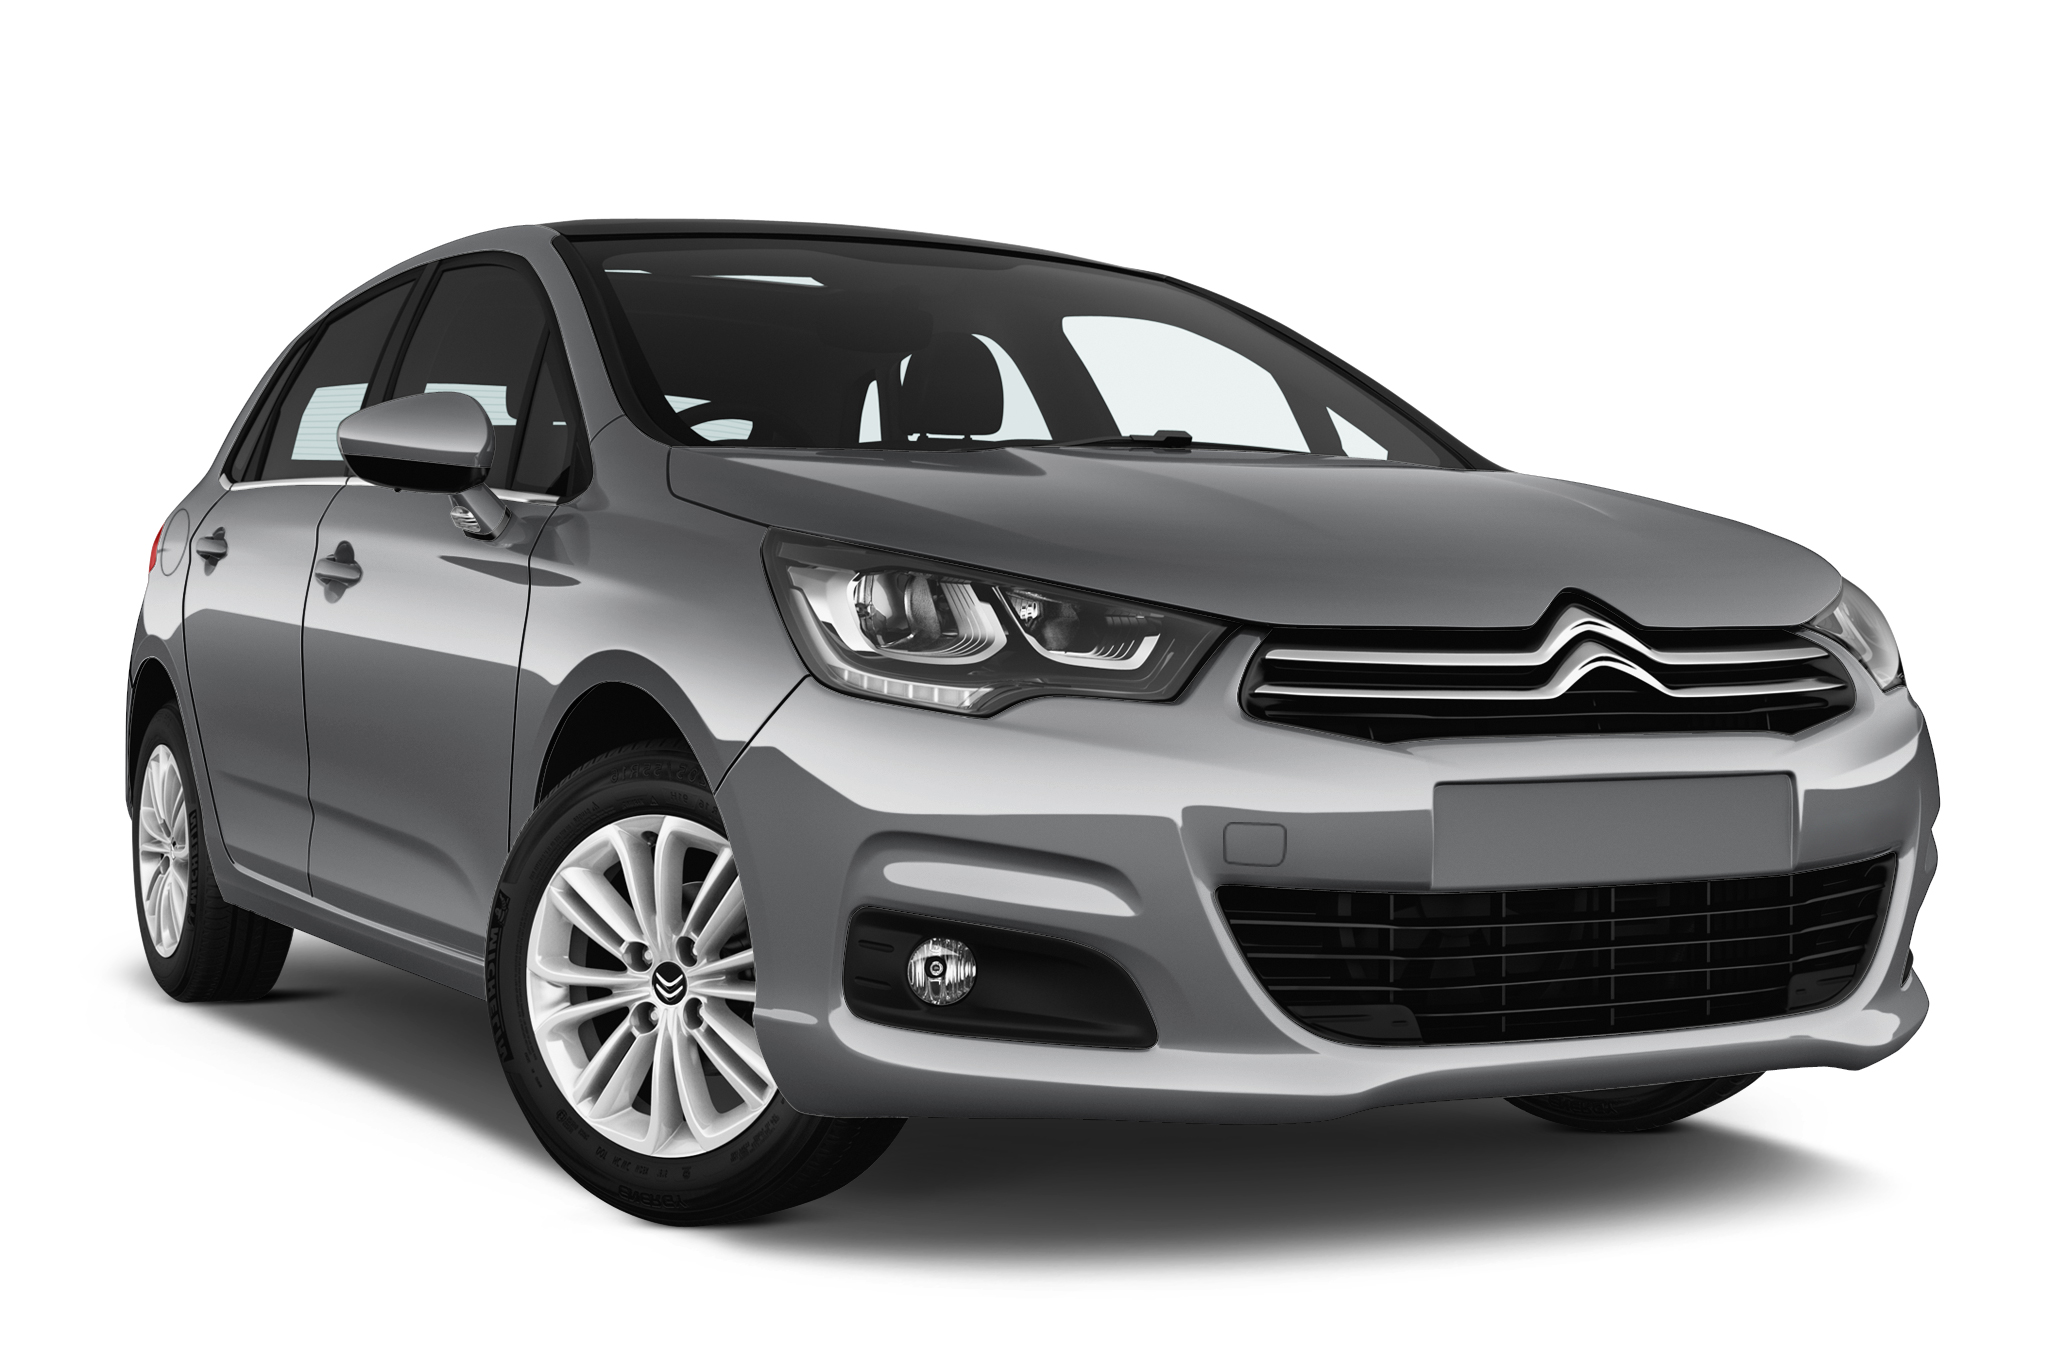 Citroen Car Rental in Marrakech, Morocco - RENTAL24H